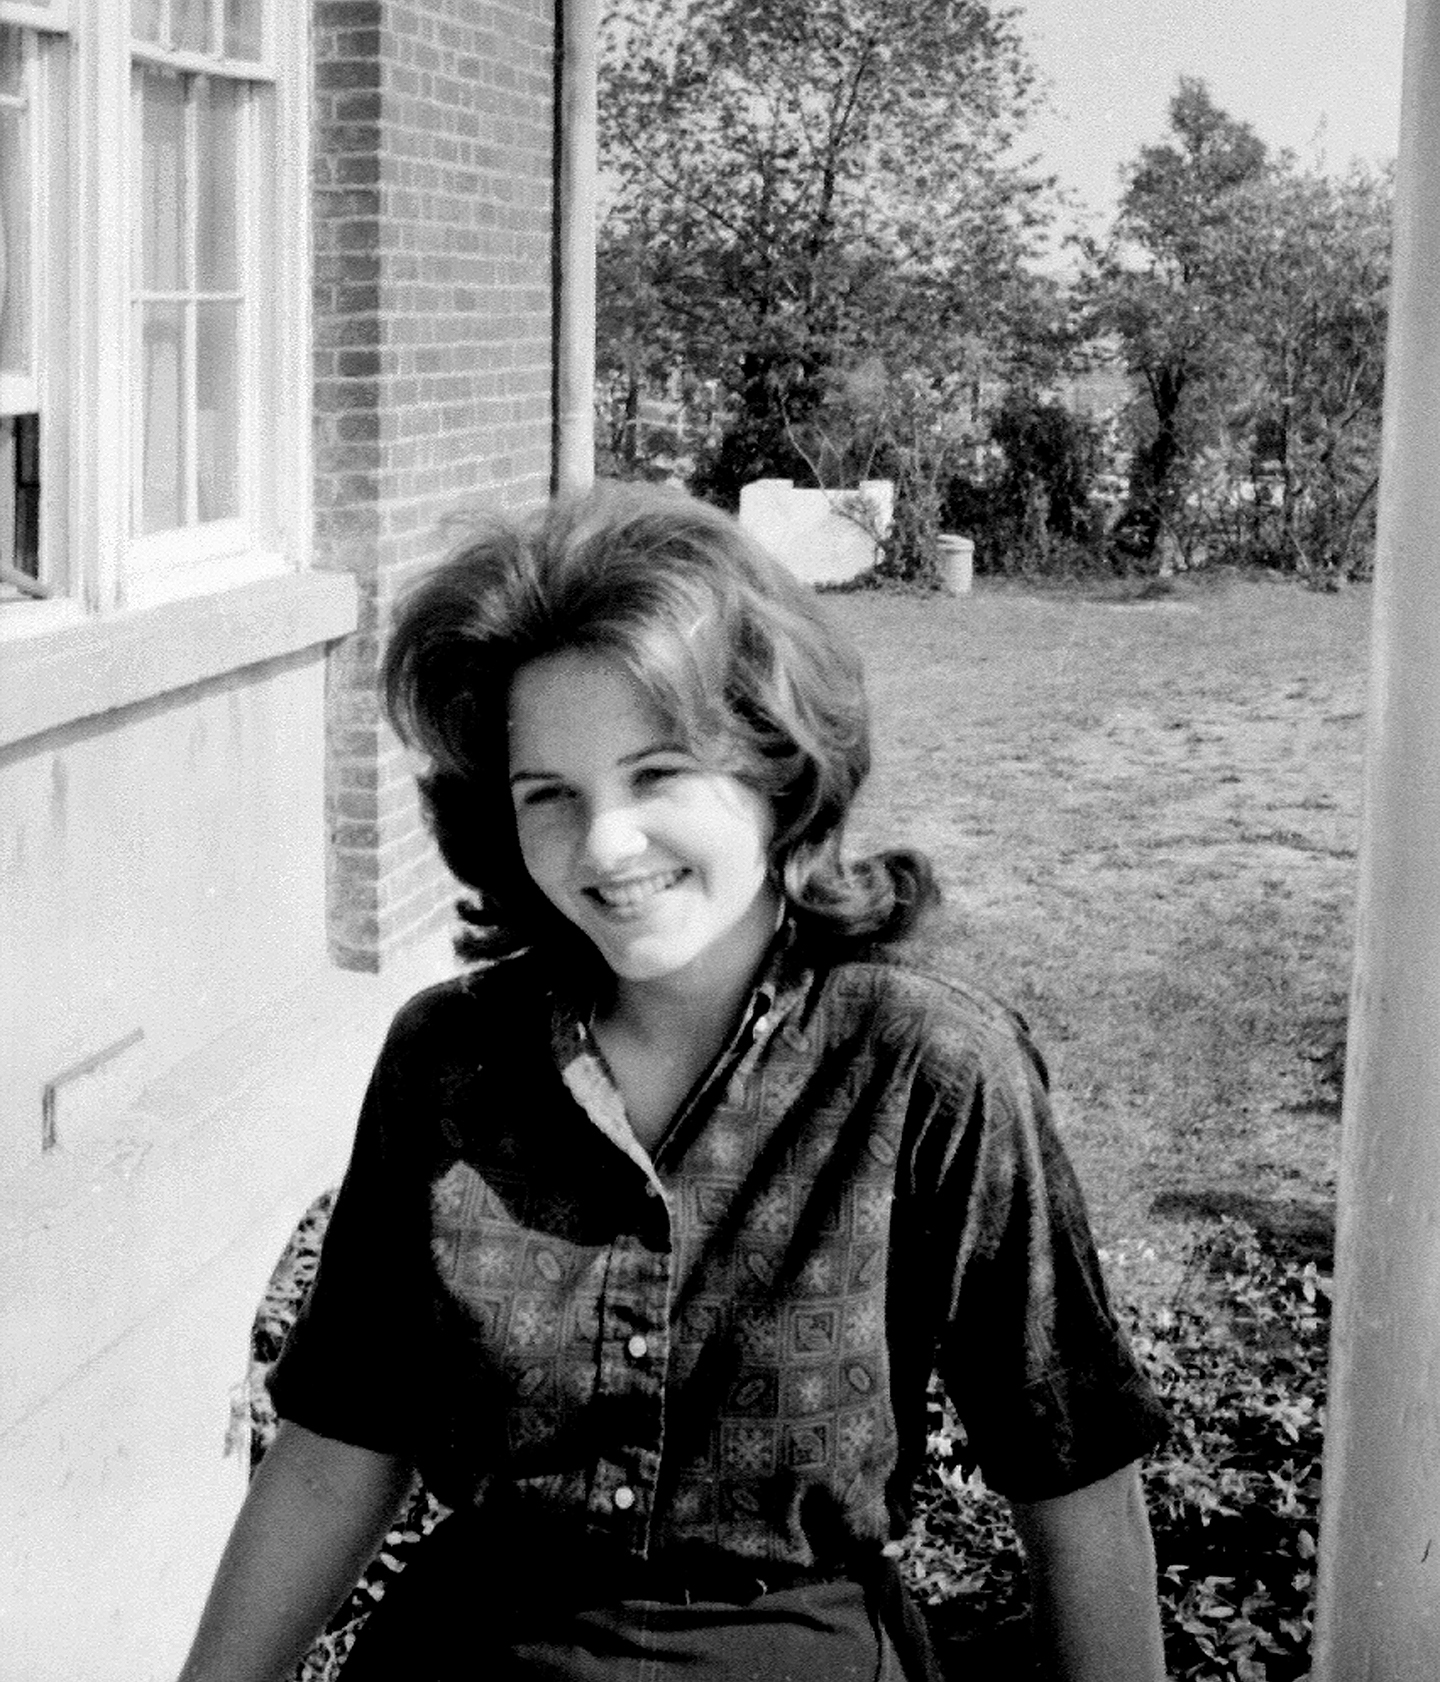 Helen Momsen (Johnson), March 10, 1963, Bailey's Crossroads campus